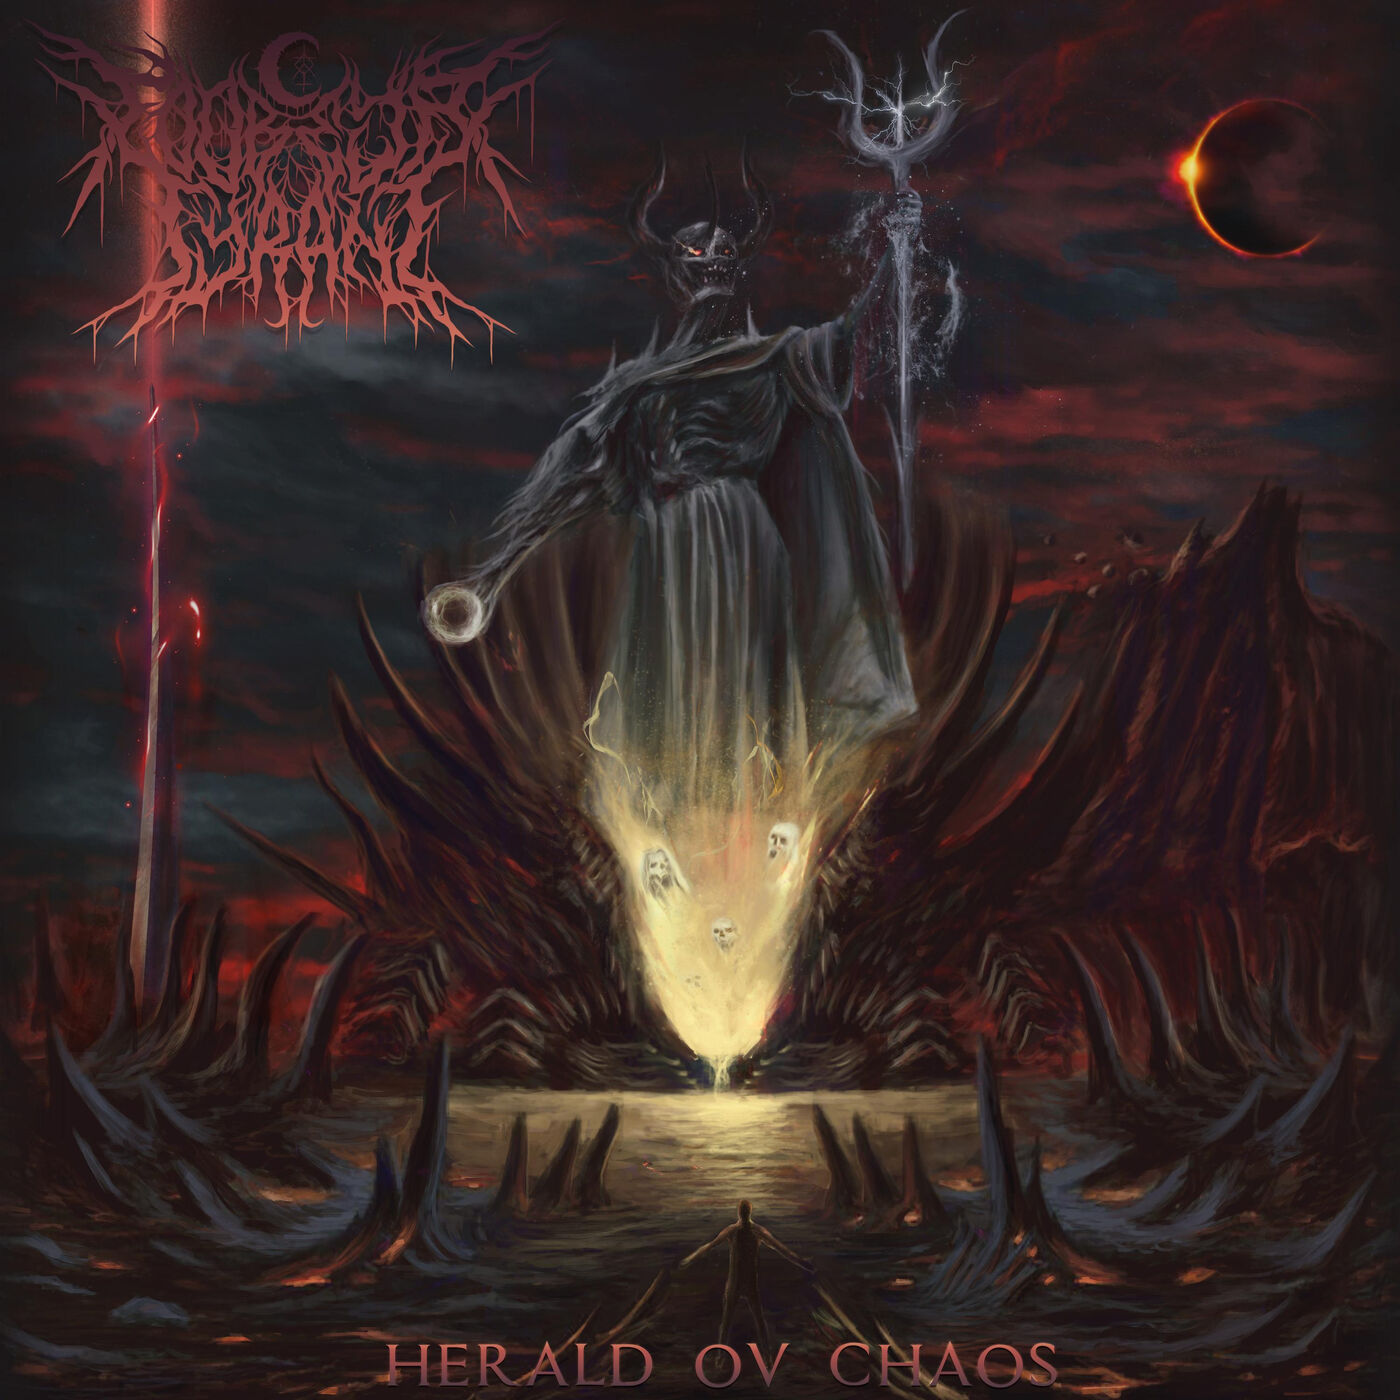 To Obey a Tyrant - Herald Ov Chaos [single] (2020)